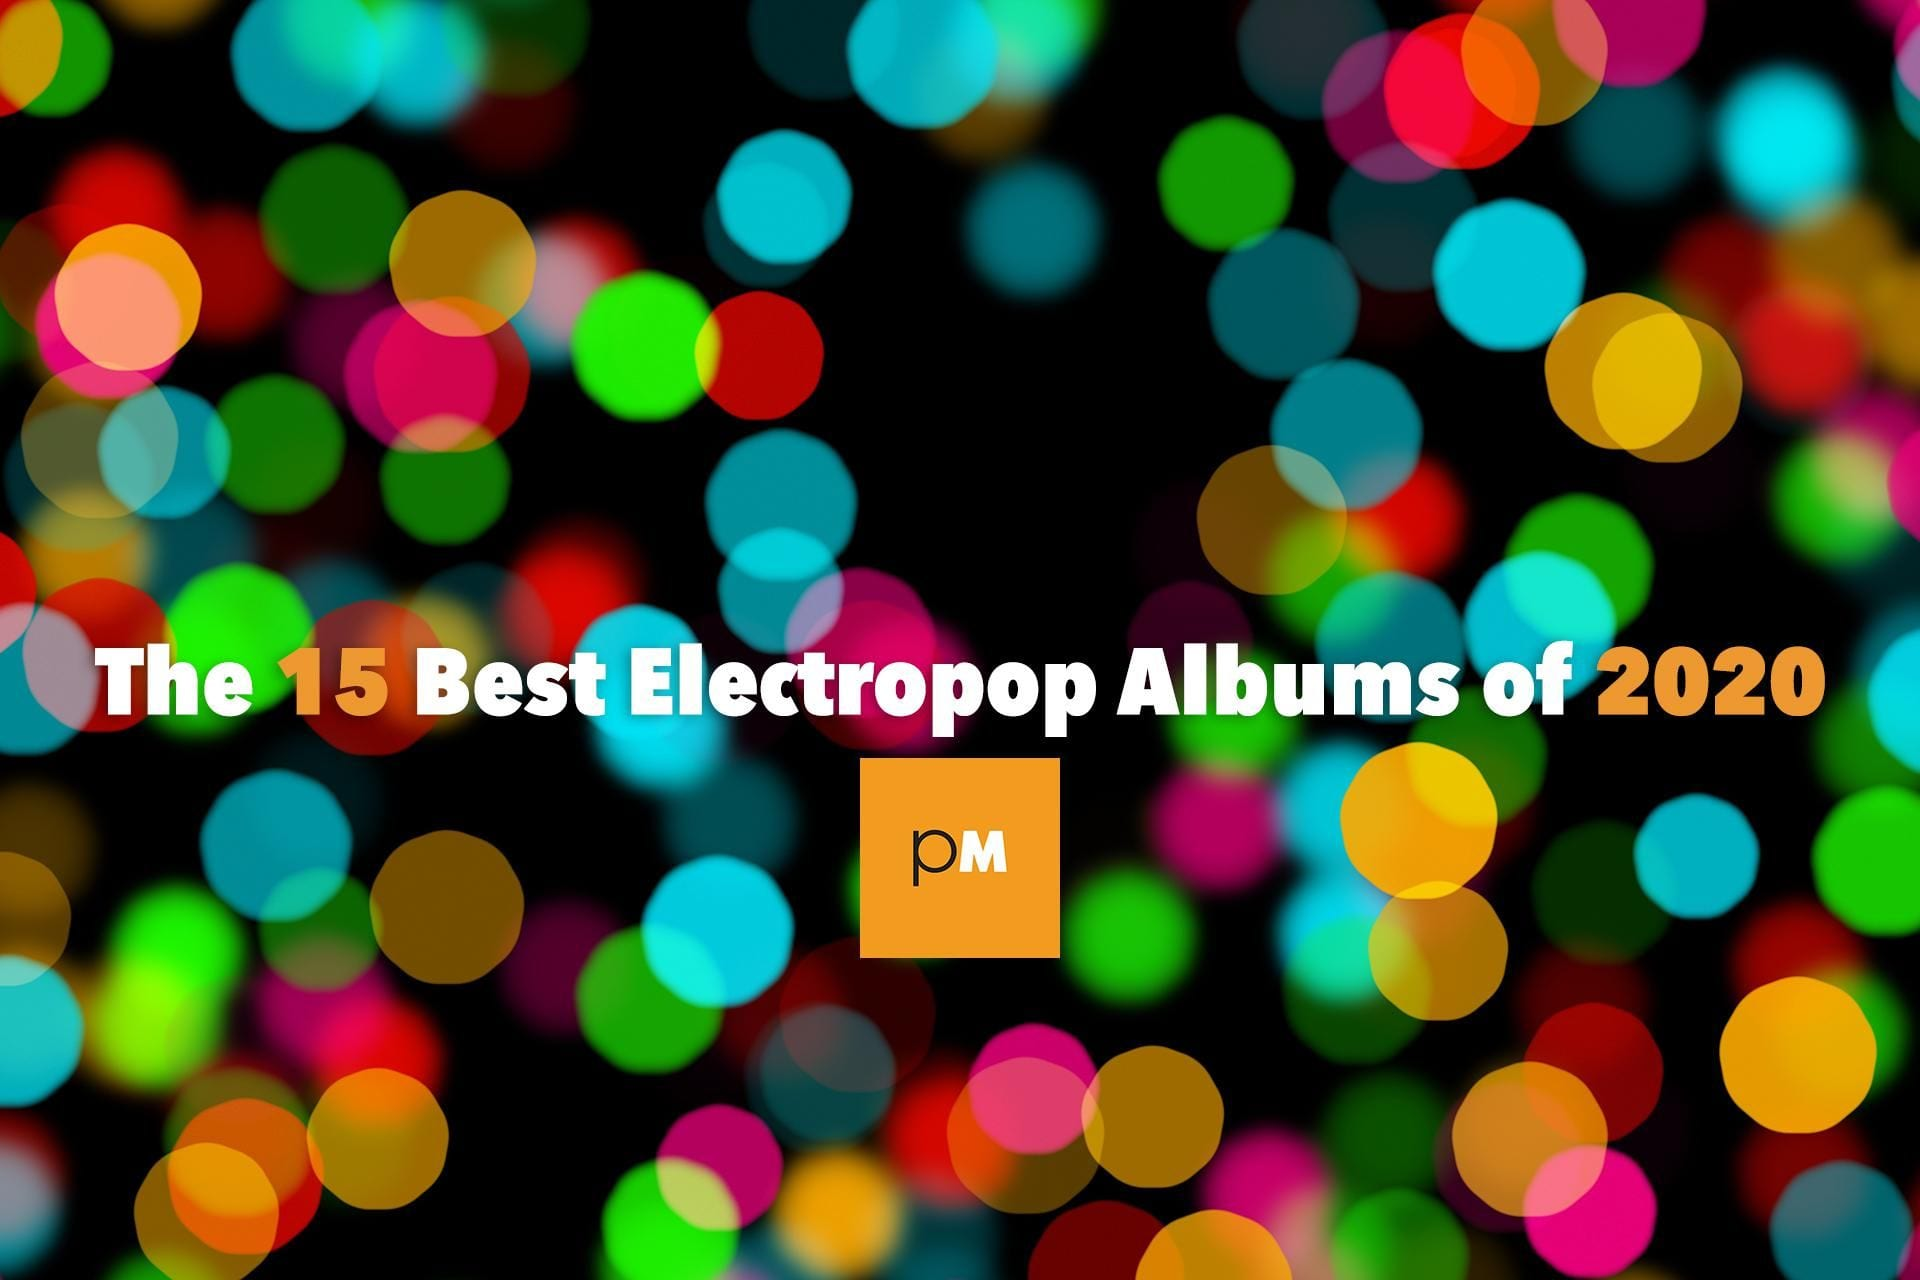 The 15 Best Electropop Albums of 2020